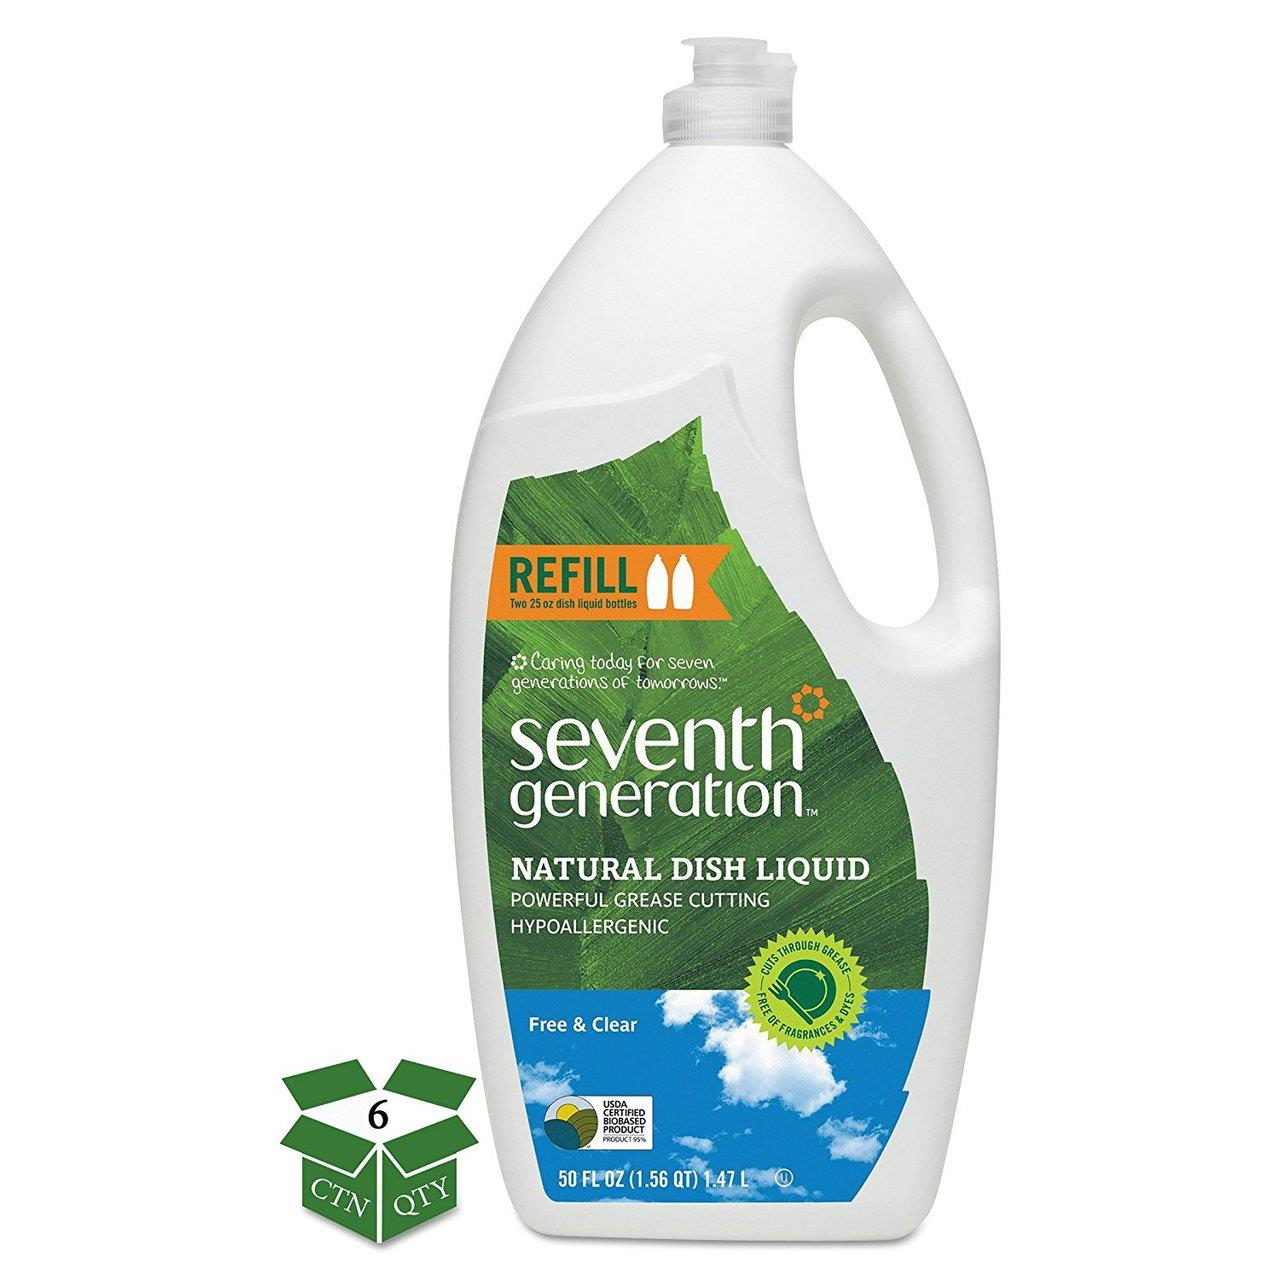 Bulk Natural Dishwashing Liquid, Free & Clear, Jumbo 50 oz Bottles: 7th Generation 22724 (6 Dishwashing Liquid Bottles)